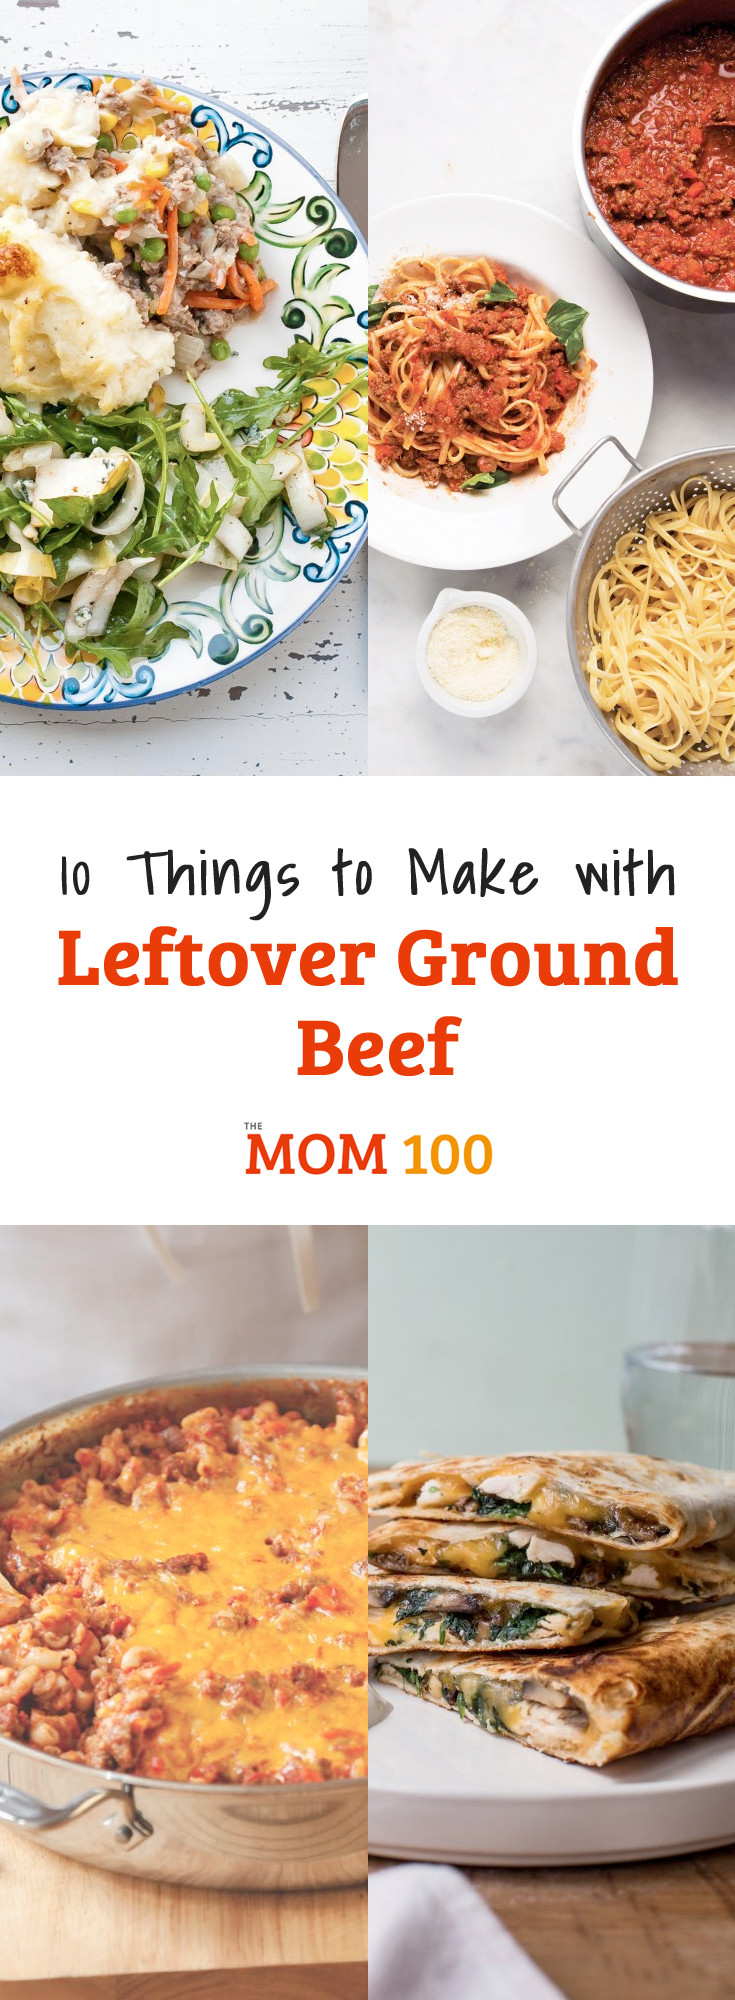 Stuff To Make With Ground Beef  10 Things To Make With Leftover Ground Beef